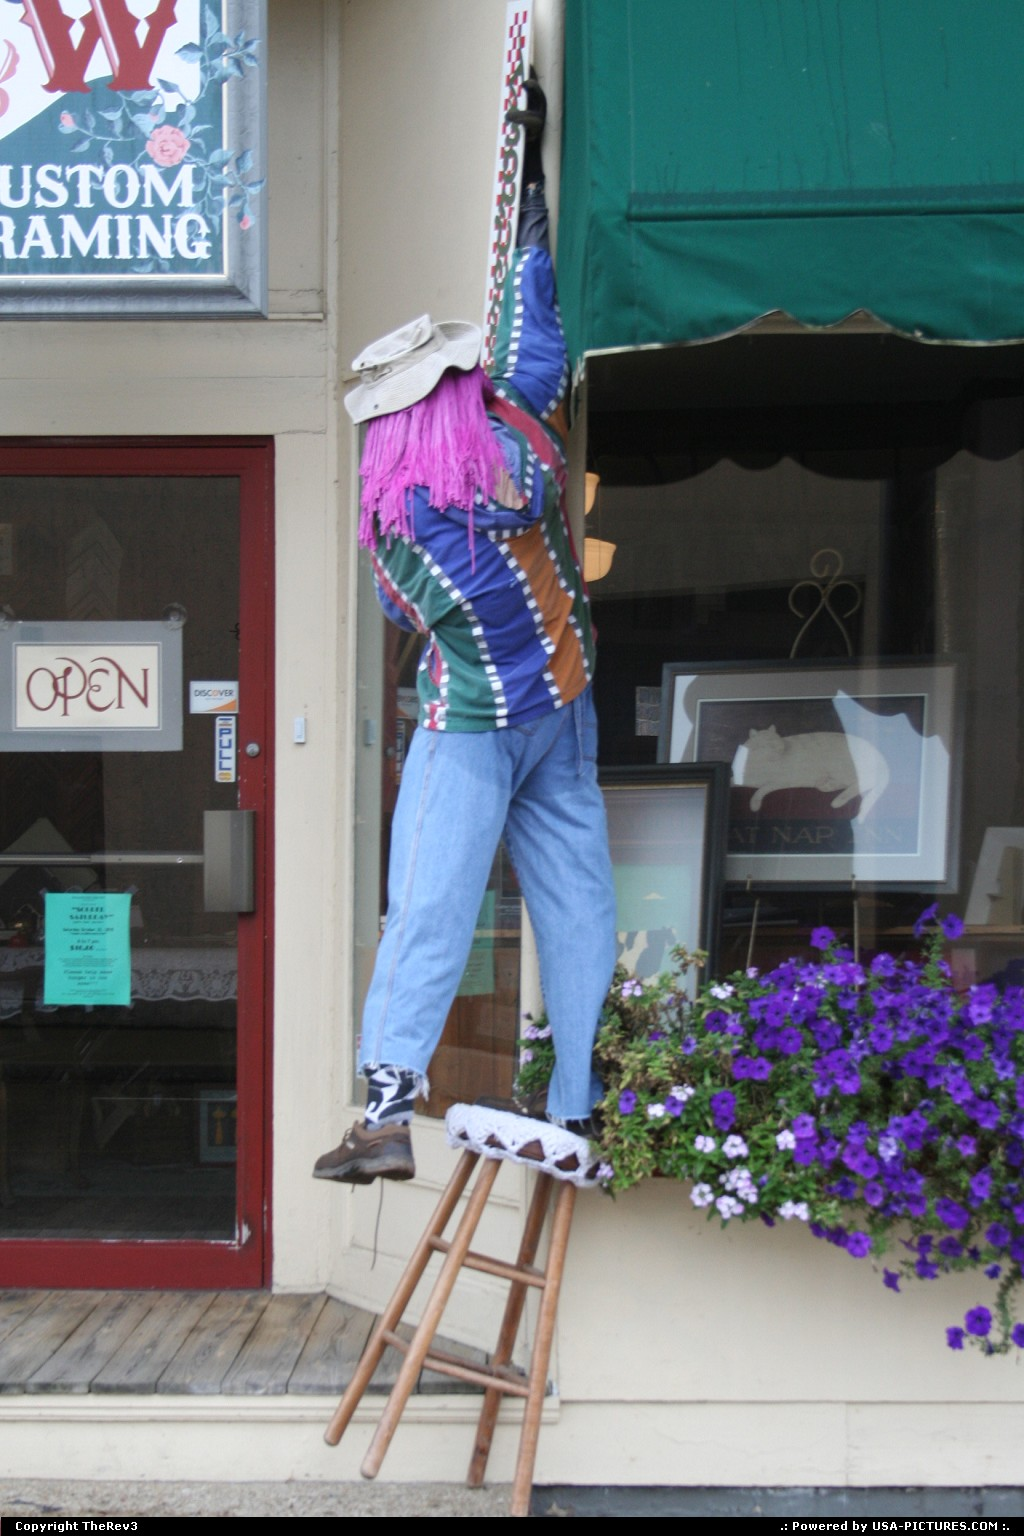 Picture by TheRev3:NelsonvilleOhioHalloween, falling man, man falling from stool, tipping stool, dummy man, dummy, dummies, pranks, prank, Nelsonville OH, Ohio,